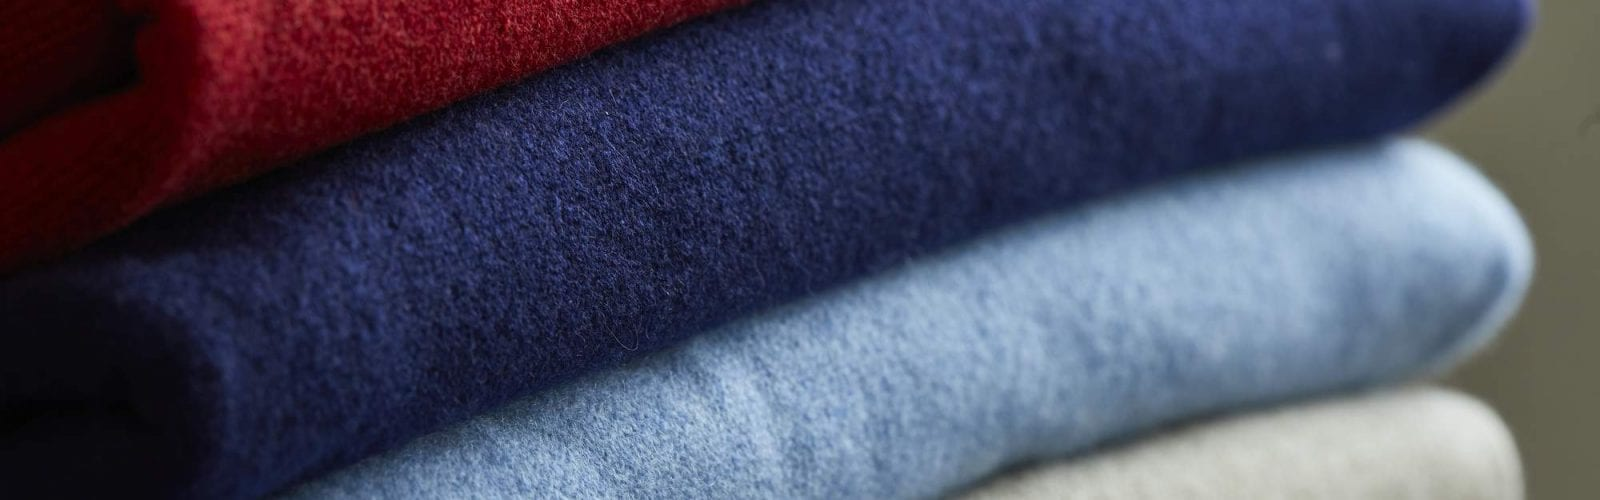 Cashmere knitwear by Cuyler and Davy